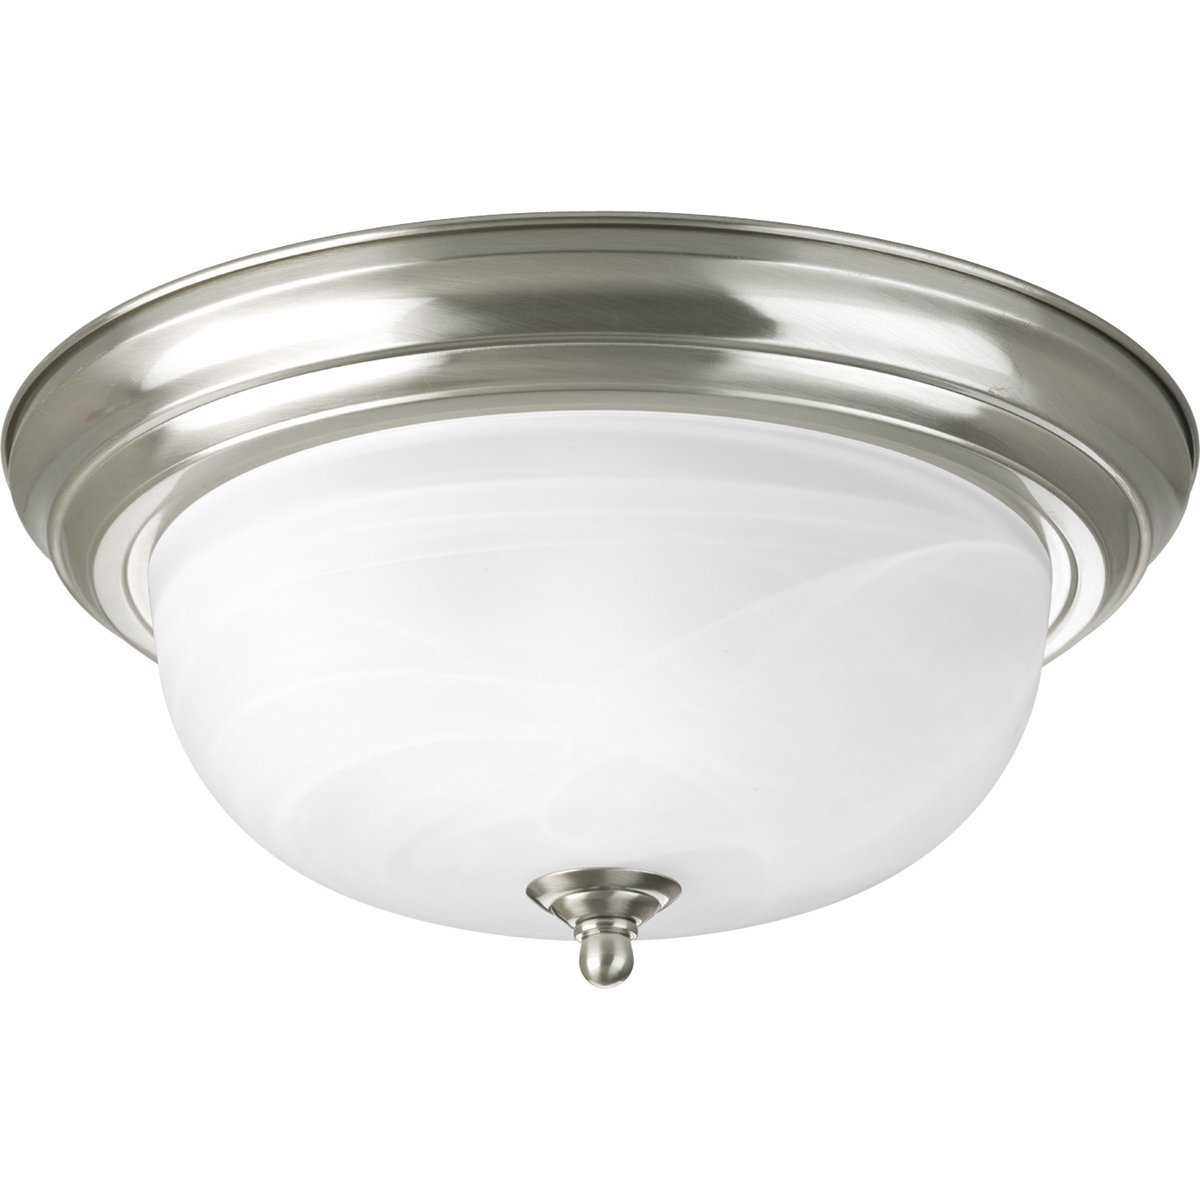 Plafondbeugel Lamp Ceiling Mounted Lights Elevate Small Spaces In Your Home